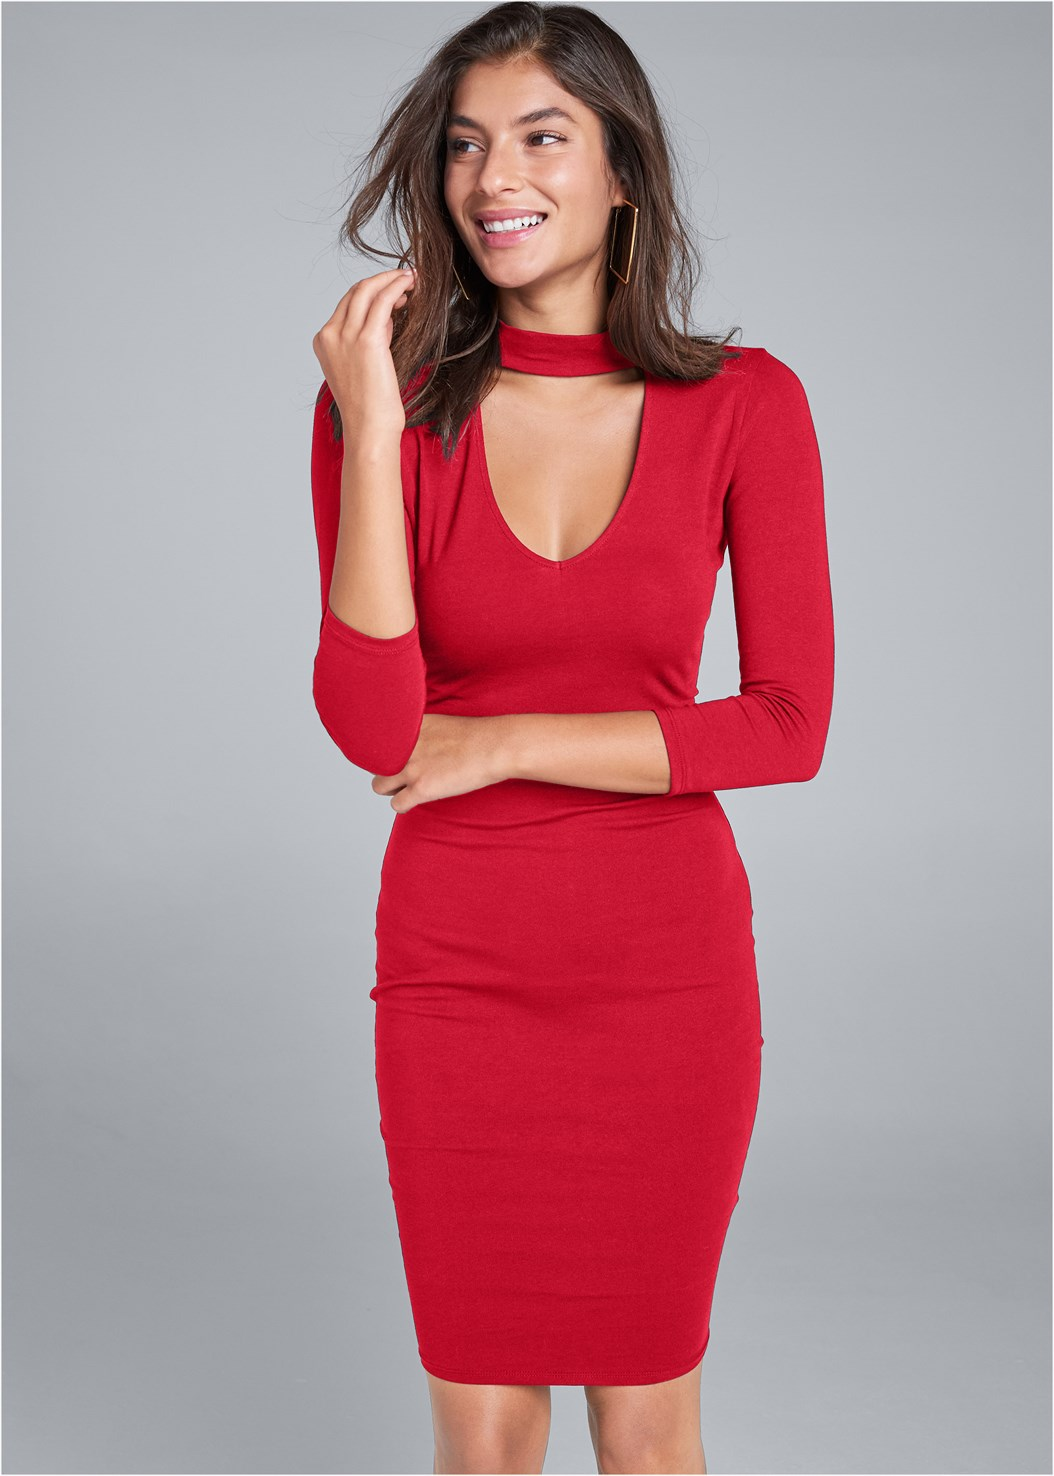 Mock Neck Midi Dress,Seamless Unlined Bra,Peep Toe Print Heels,Square Hoop Earrings